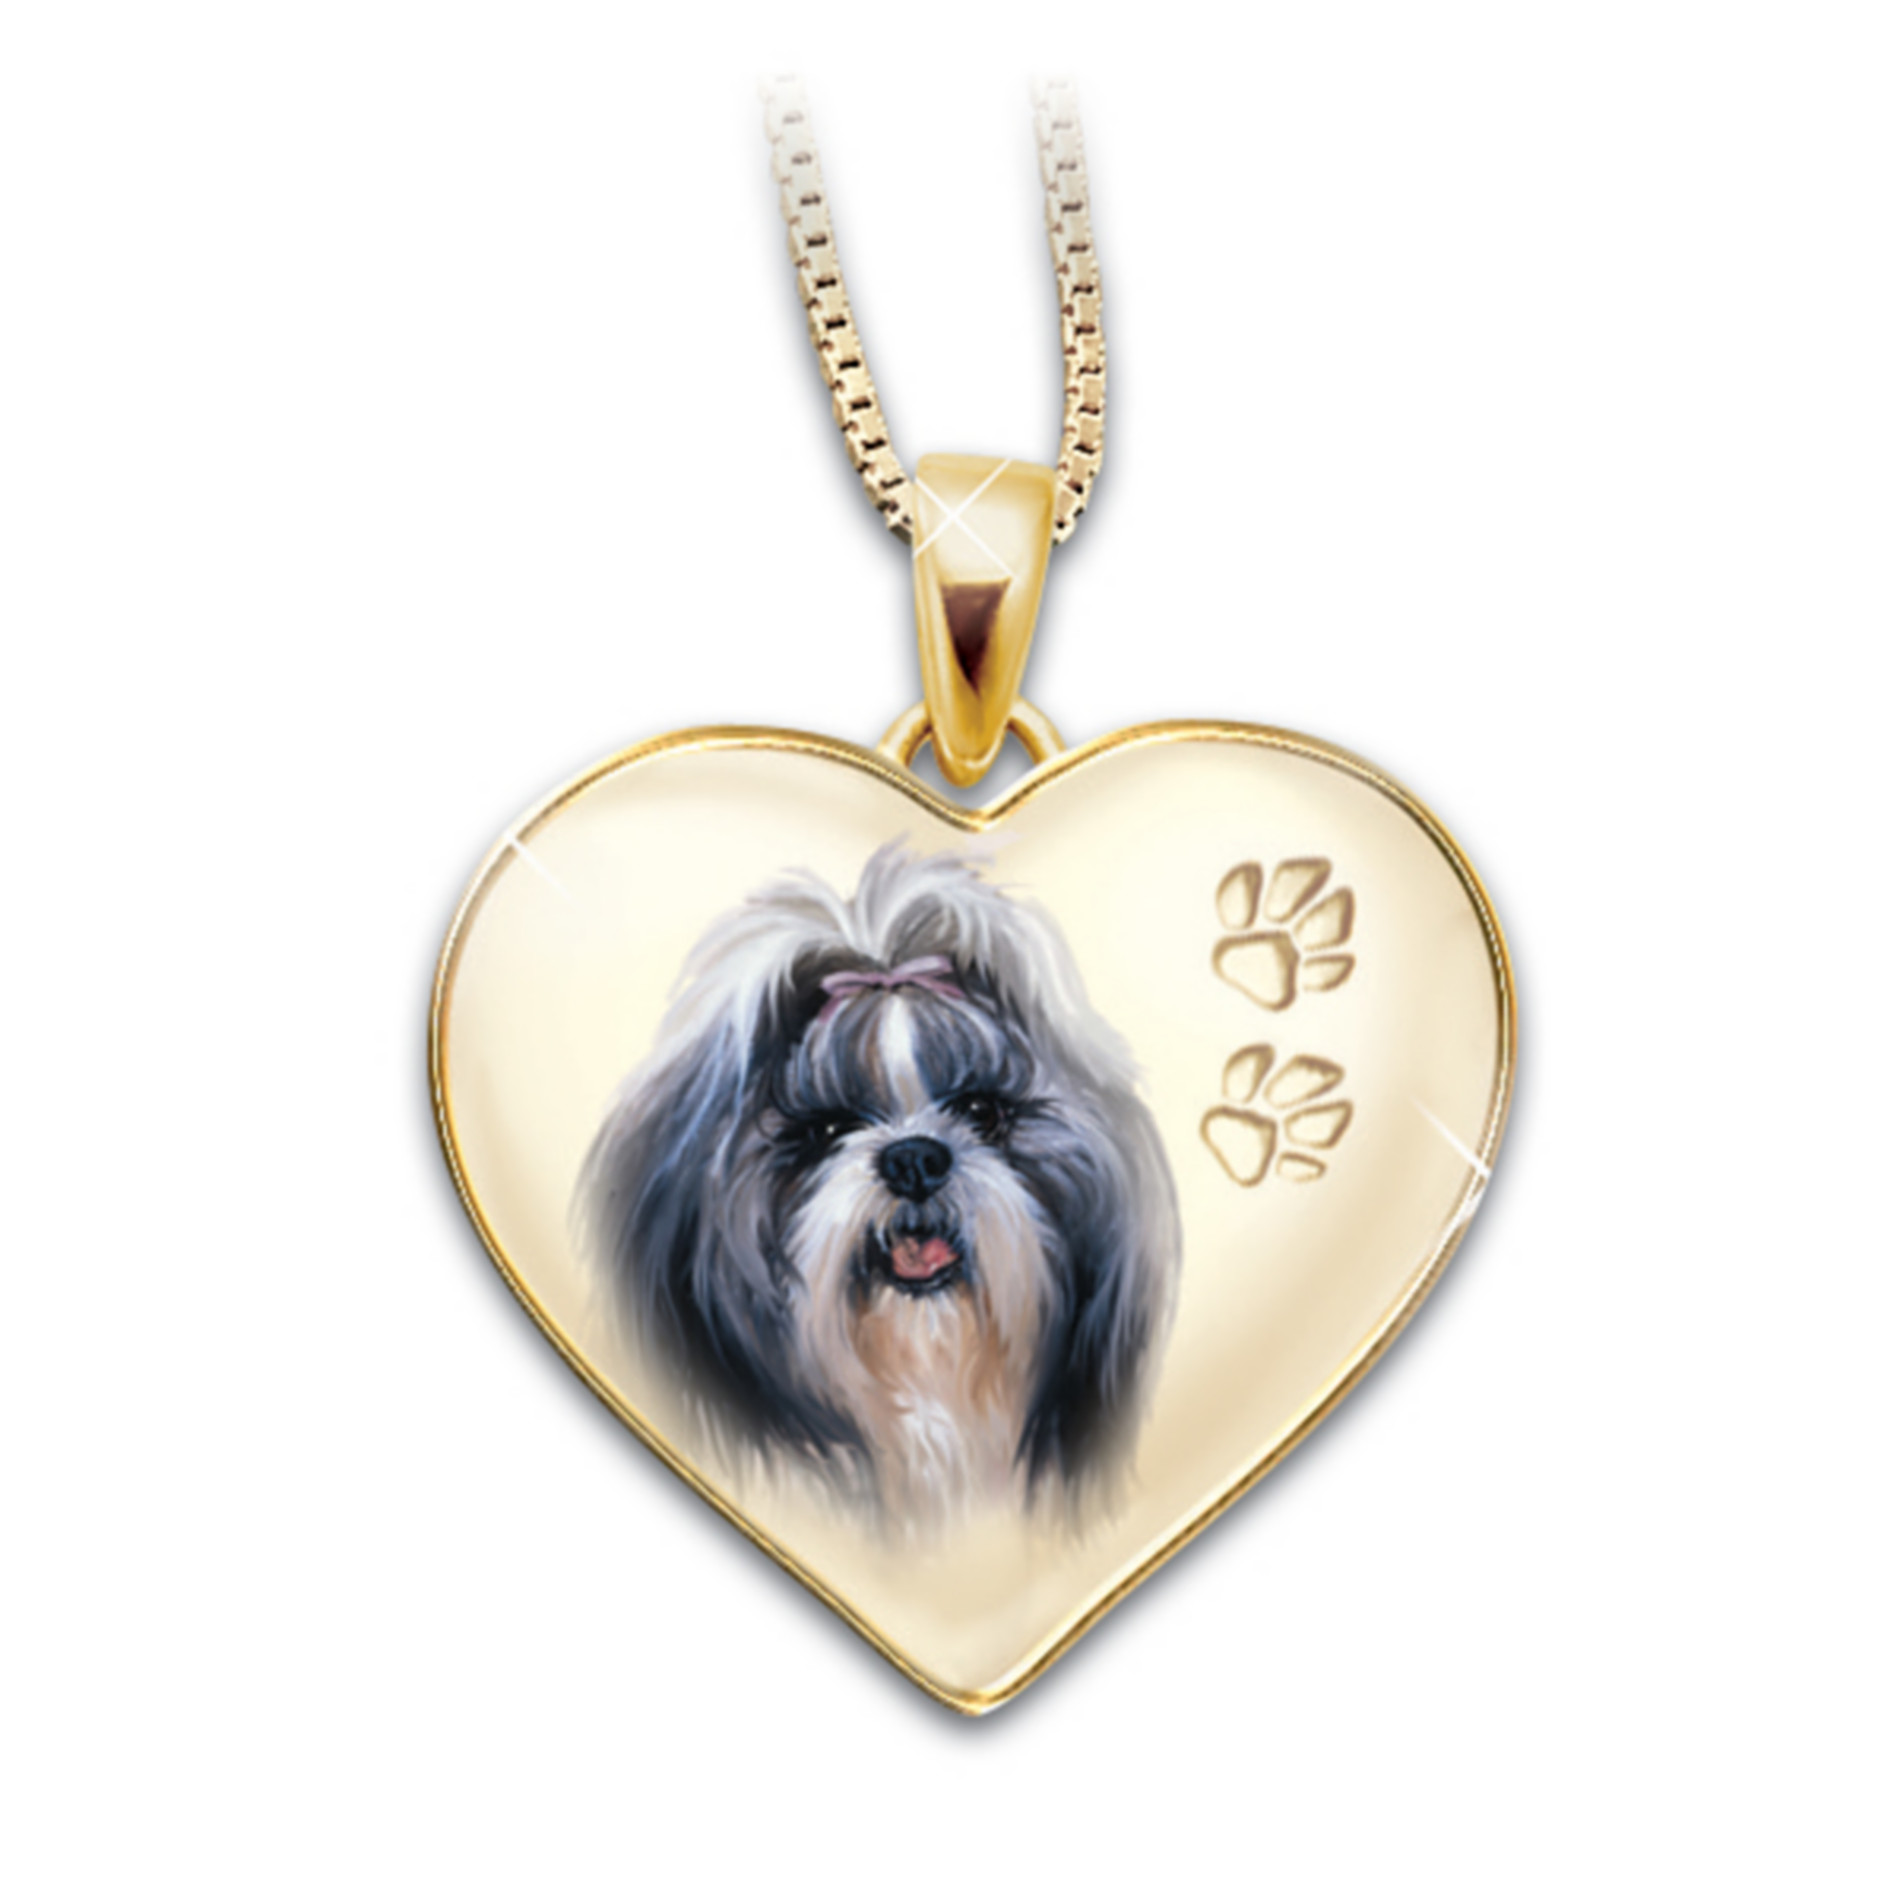 The Bradford Exchange Keepsake Shih Tzu Dog Pendant Necklace at Sears.com